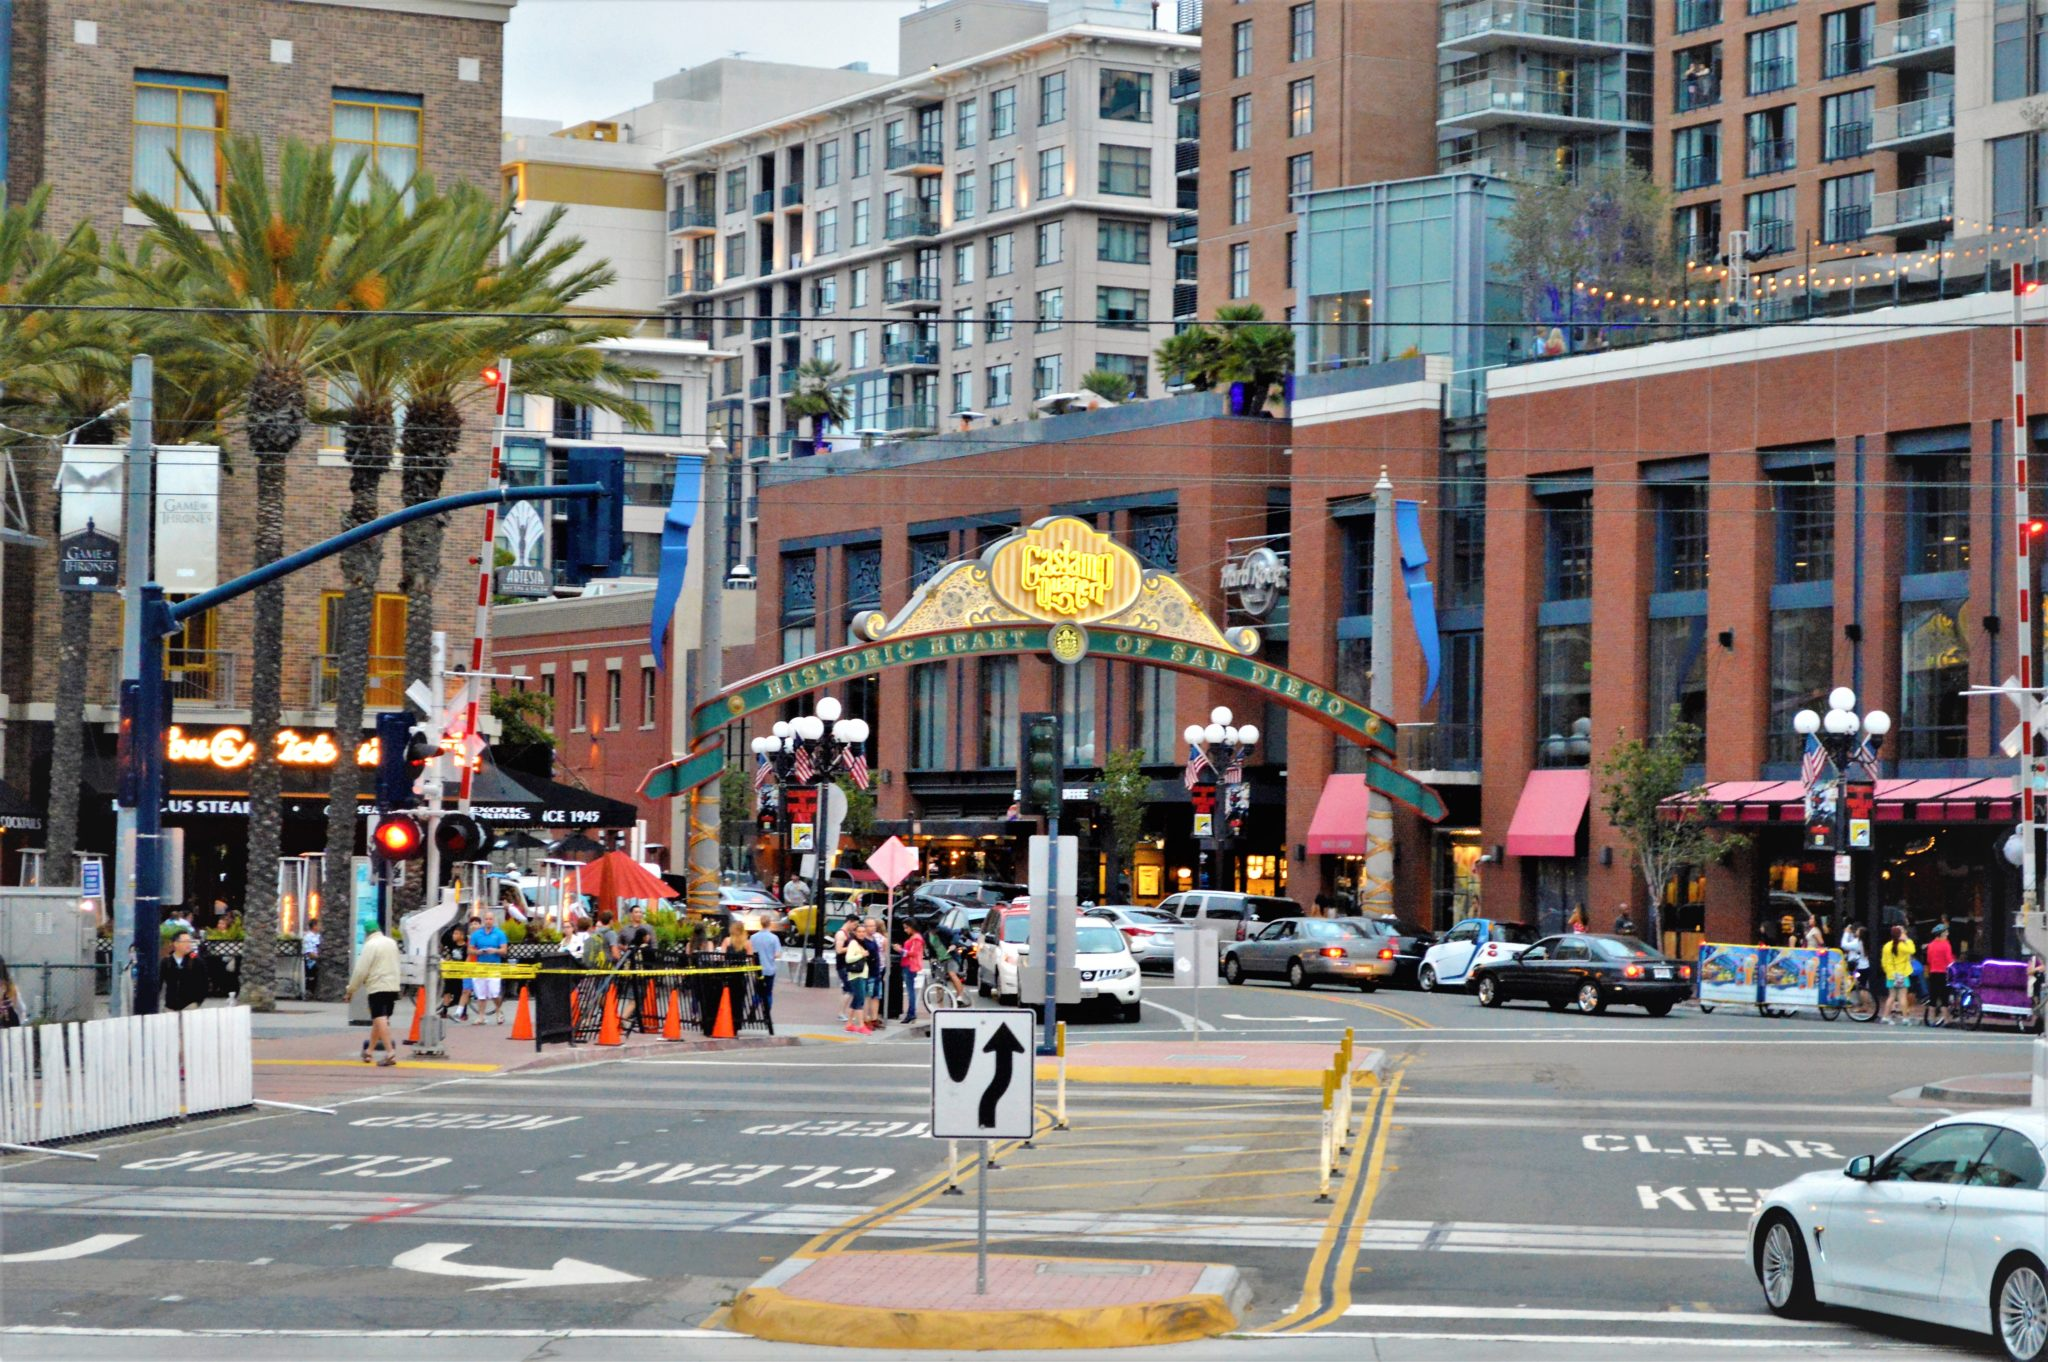 new restaurants gaslamp san diego 2018 April 17, 2018